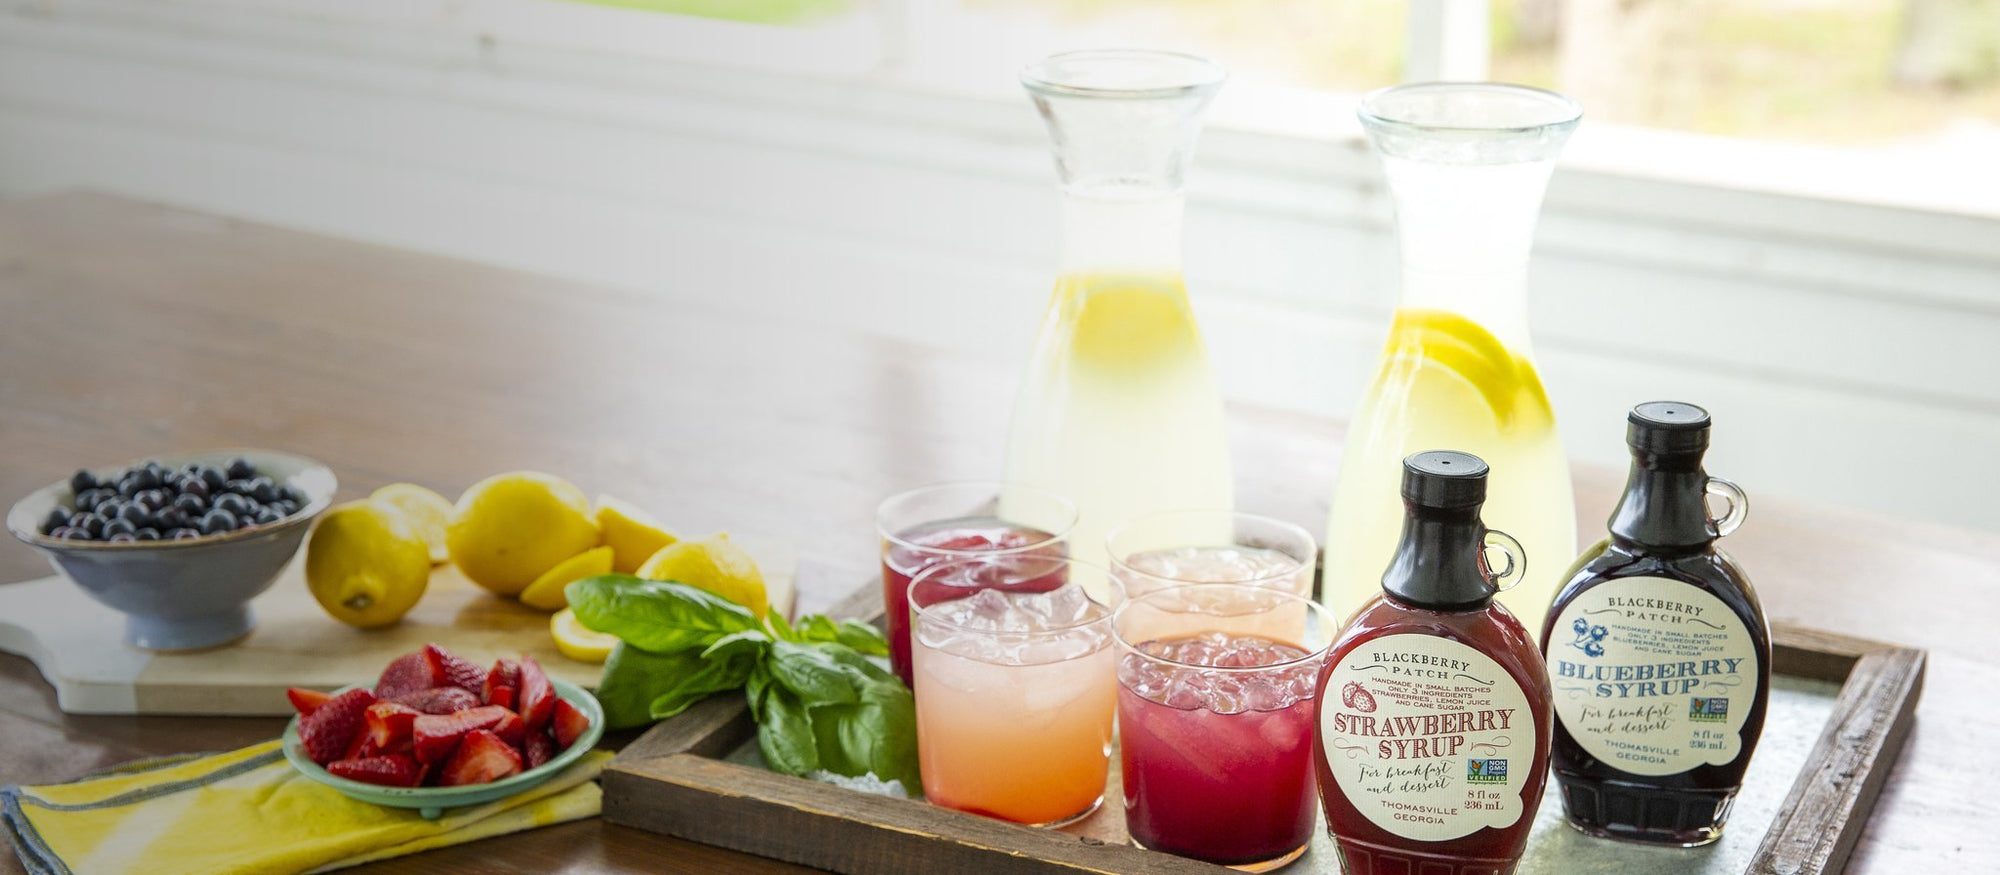 Lemonade using strawberry and blueberry 3 ingredient syrups